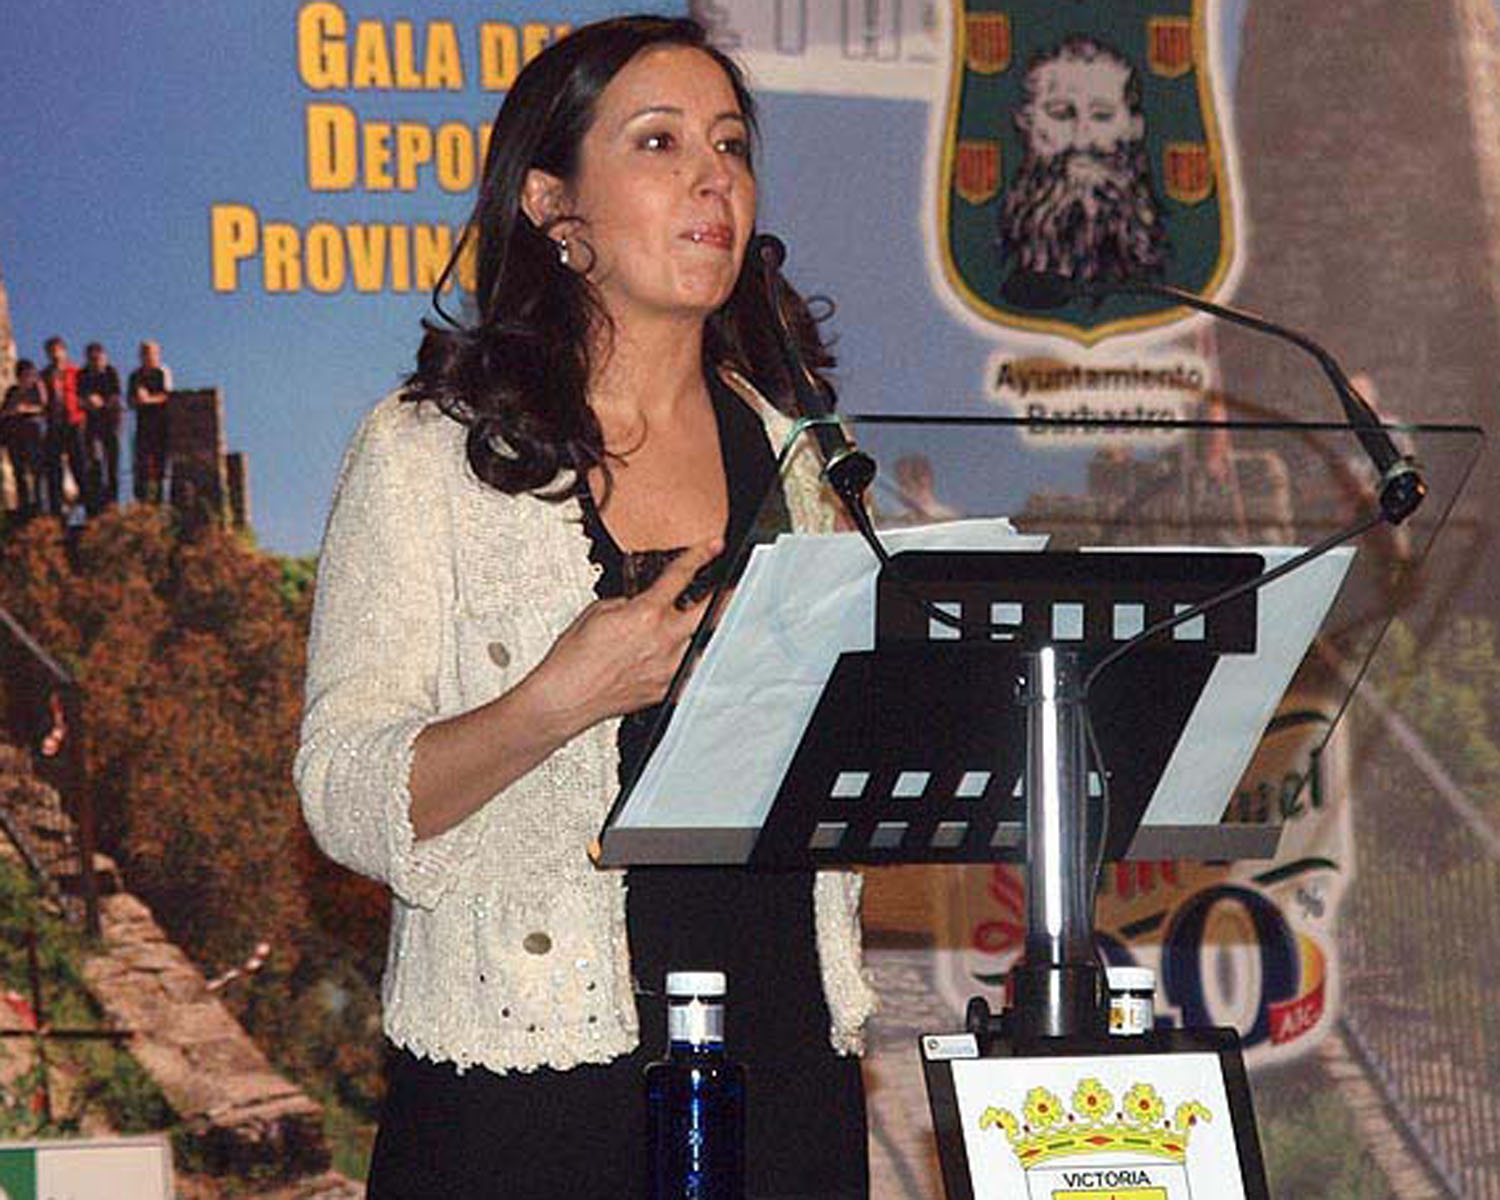 margarita gabarre